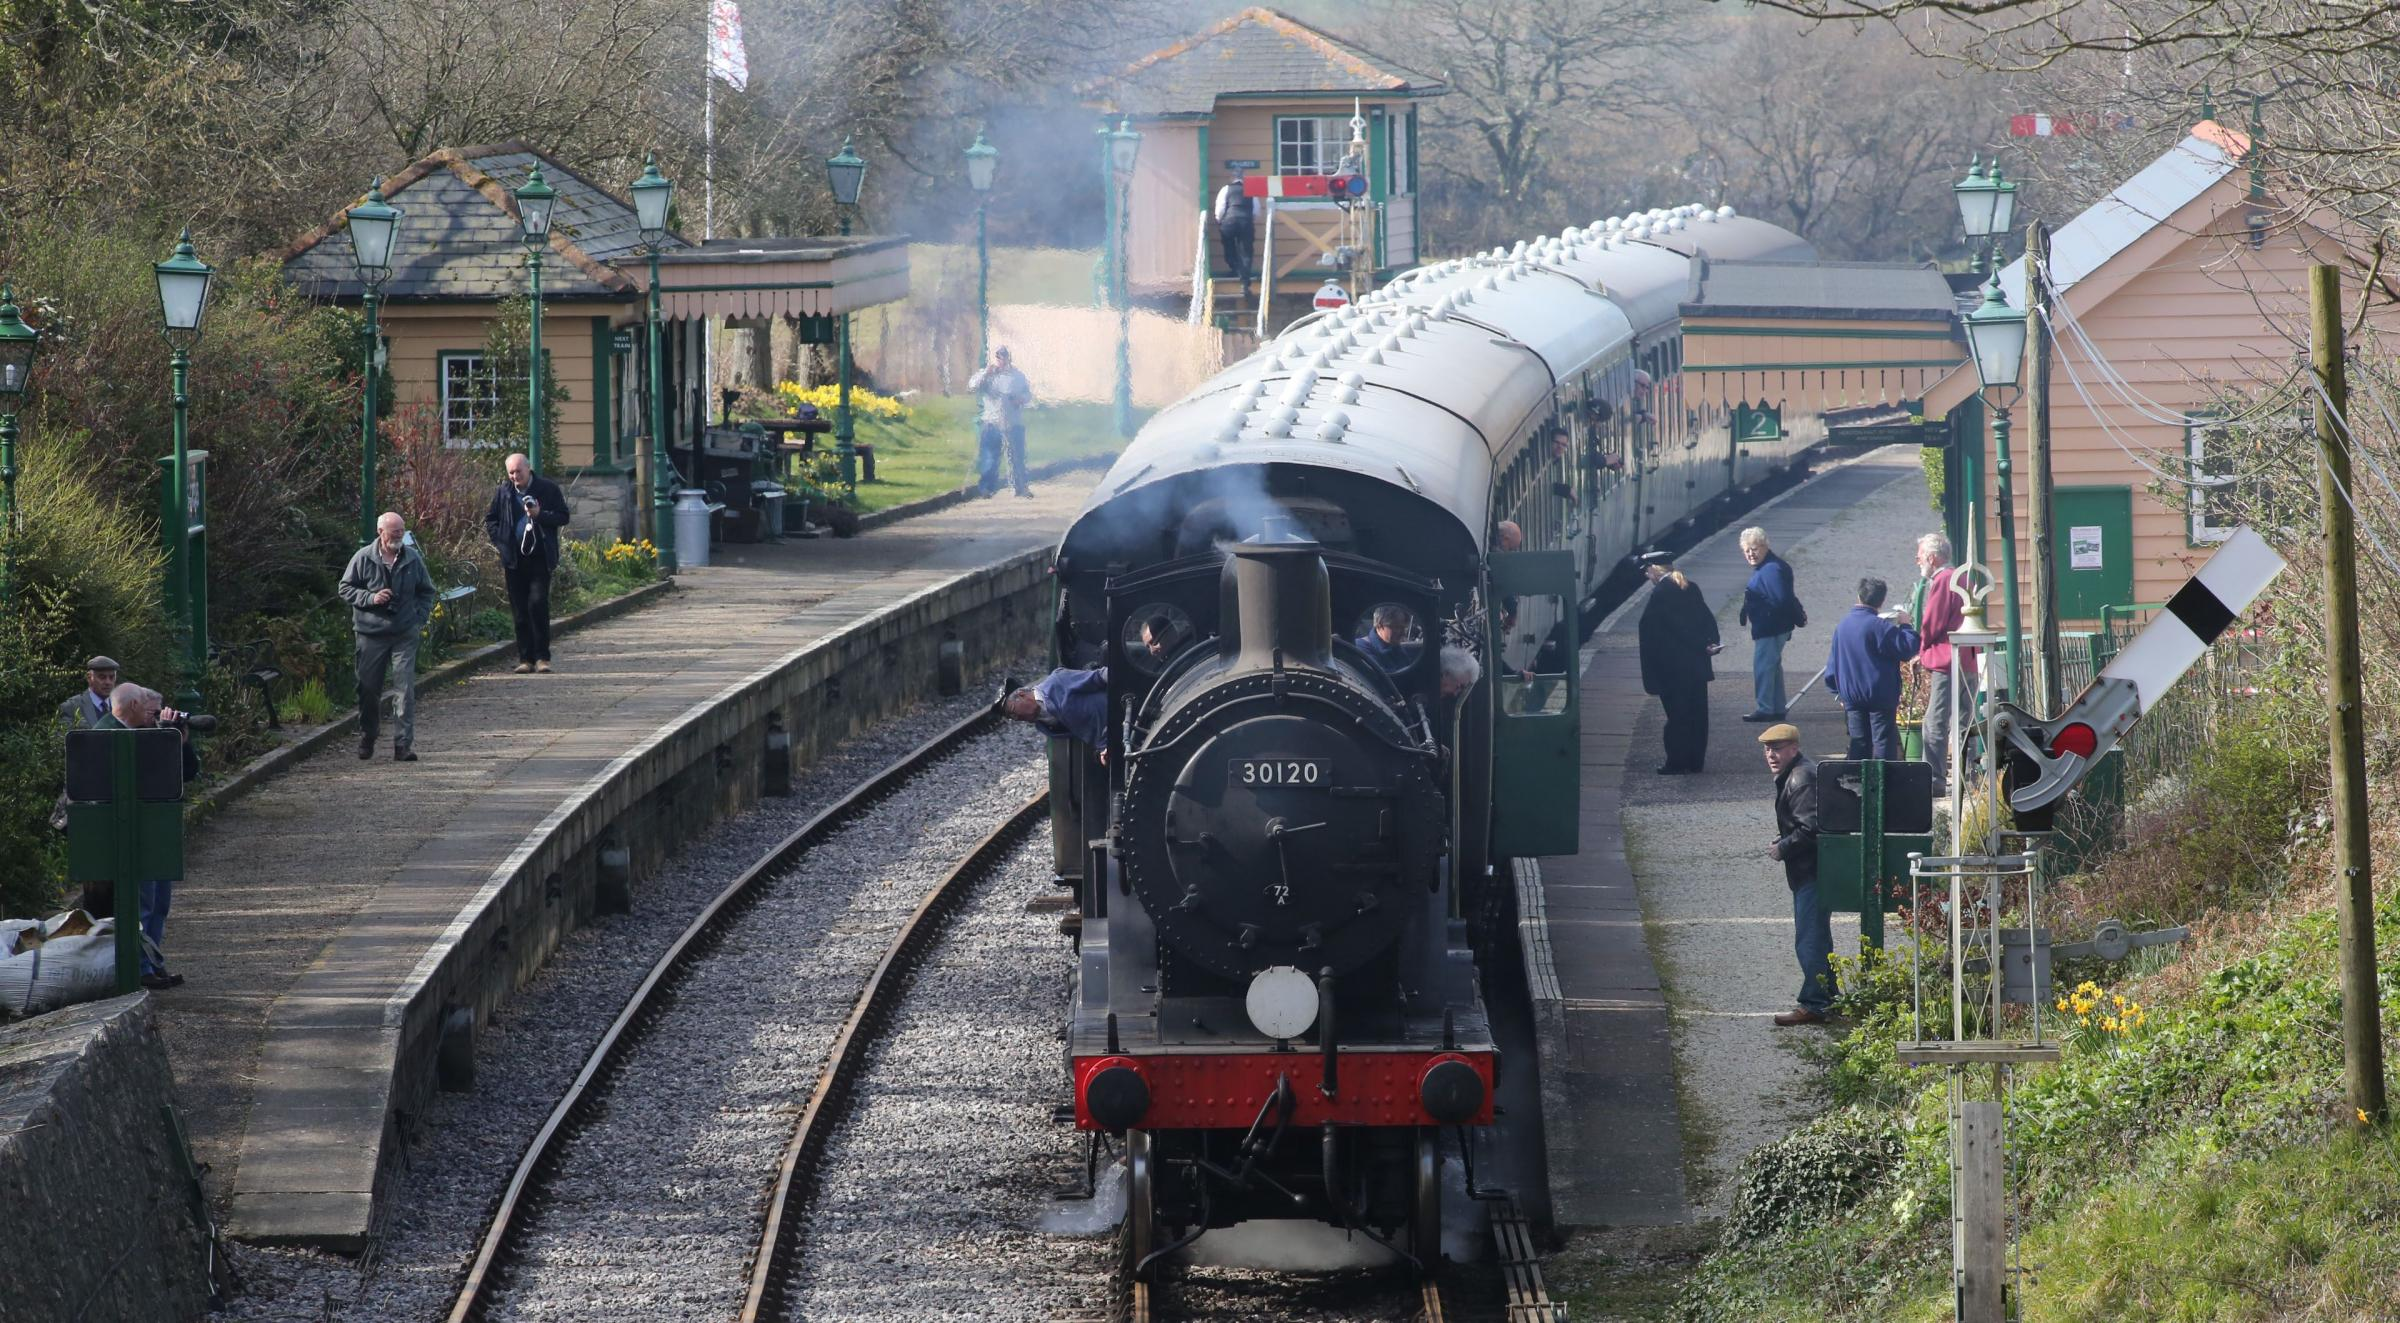 OUT OF STEAM: Diesel trains are running on the Swanage Railway after two steam locomotives collided